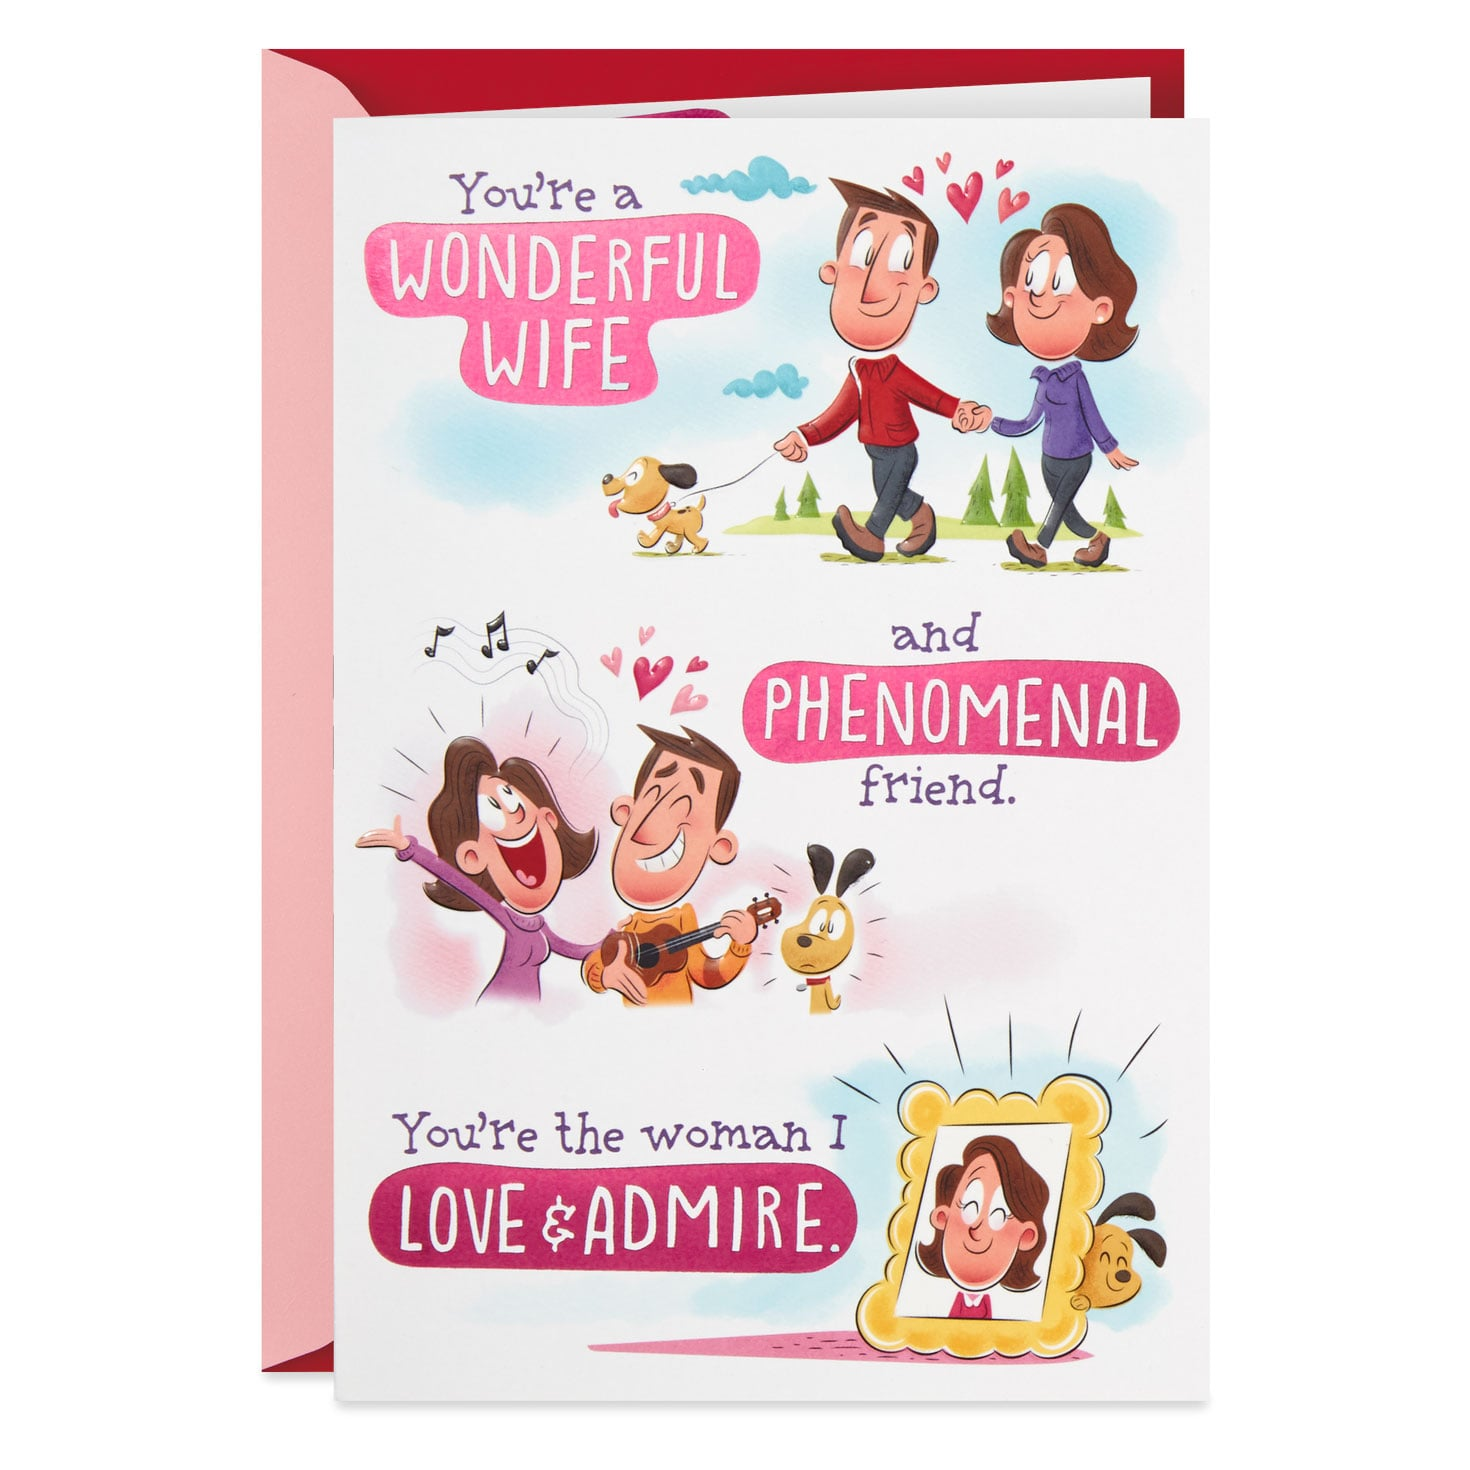 New Large Wife Pop Out Hallmark Valentine/'s Day Card /'Pop Up Novelty/'